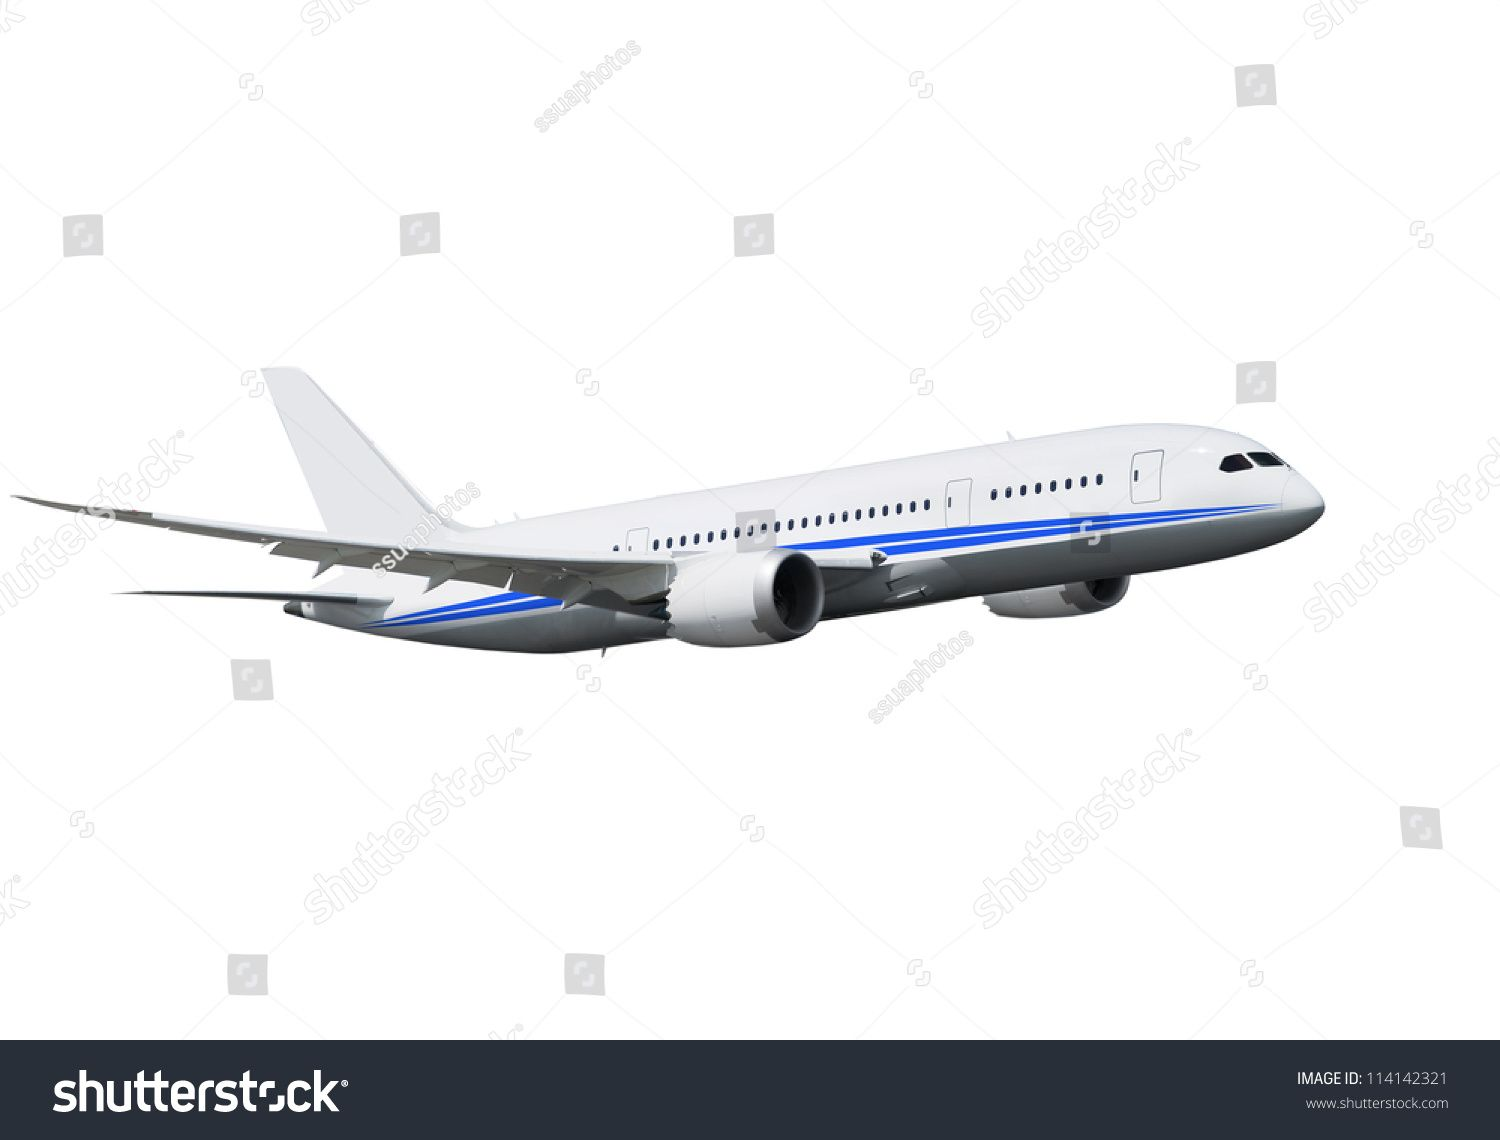 Commercial Airplane On White Background Royalty Free Images Shutterstock Stock Photography Shuttersto White Background Stock Photos Stock Photography